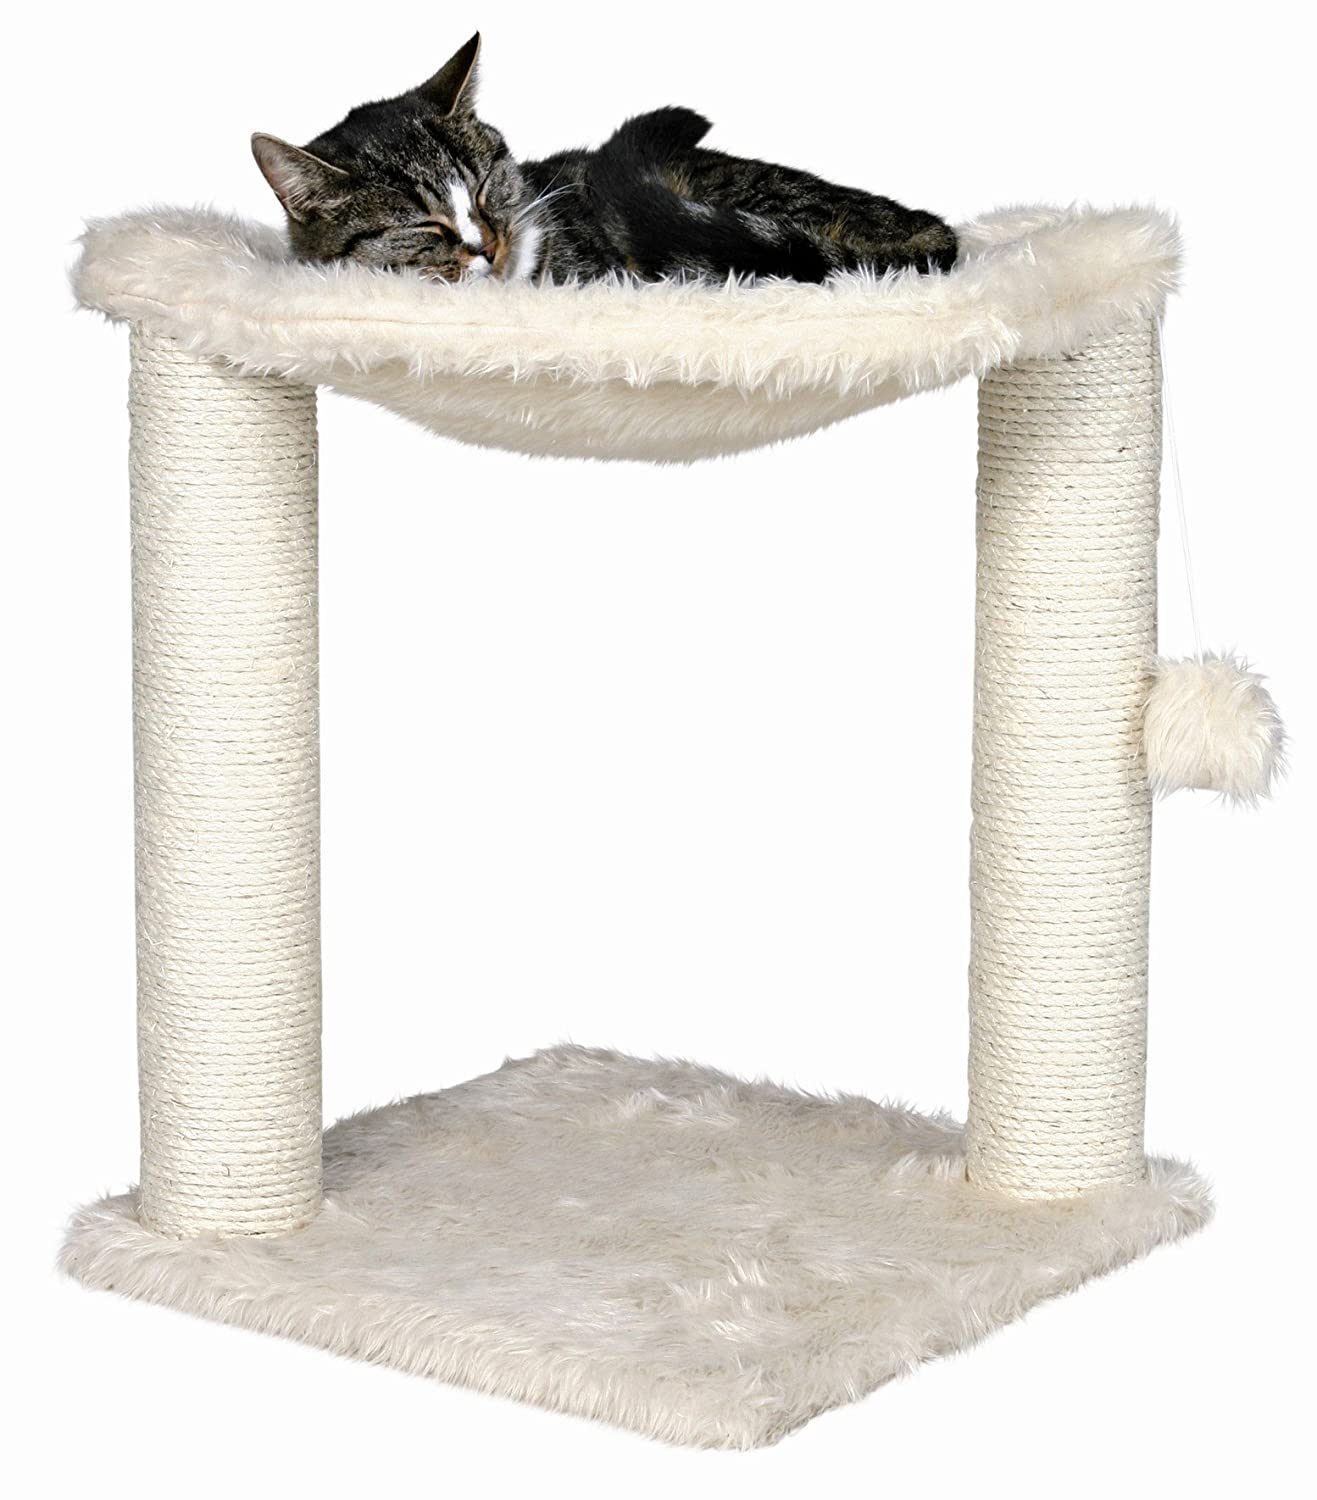 Baza Cat Hammock in Cream Color - Premium Cat Tree for Large Cats and Kittens, Cat Furniture Bundles with Scratching Post, Cat Toys and Cat Tree Hammock, Cheap Cat Trees with 1 Year Warranty